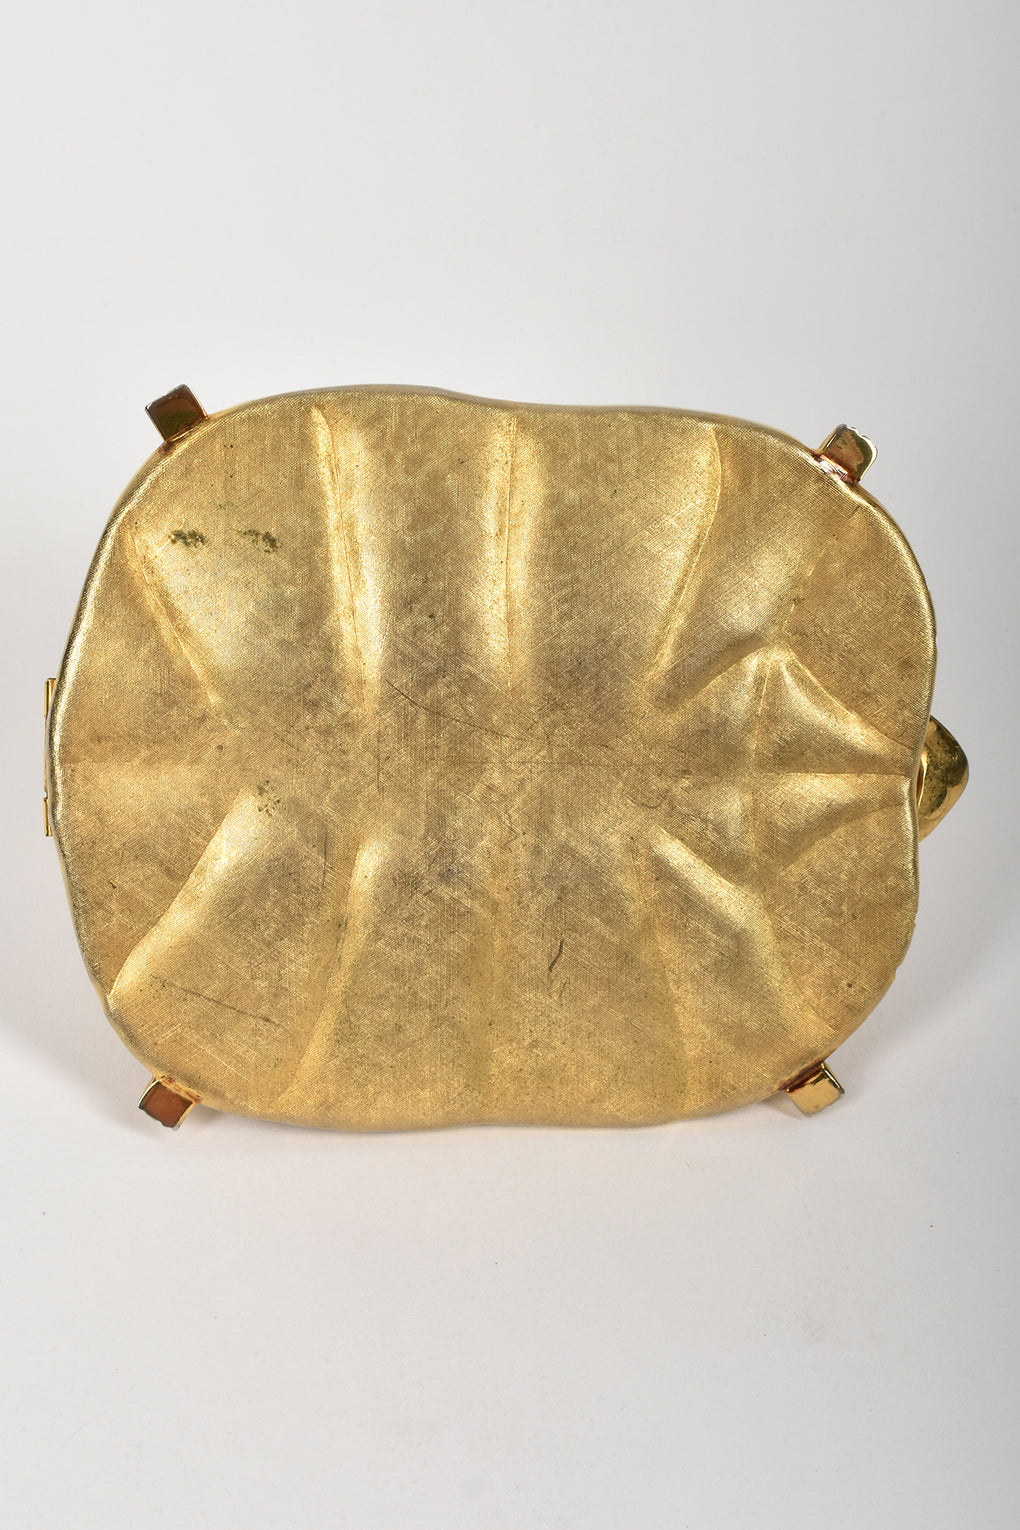 60s metal turtle bag